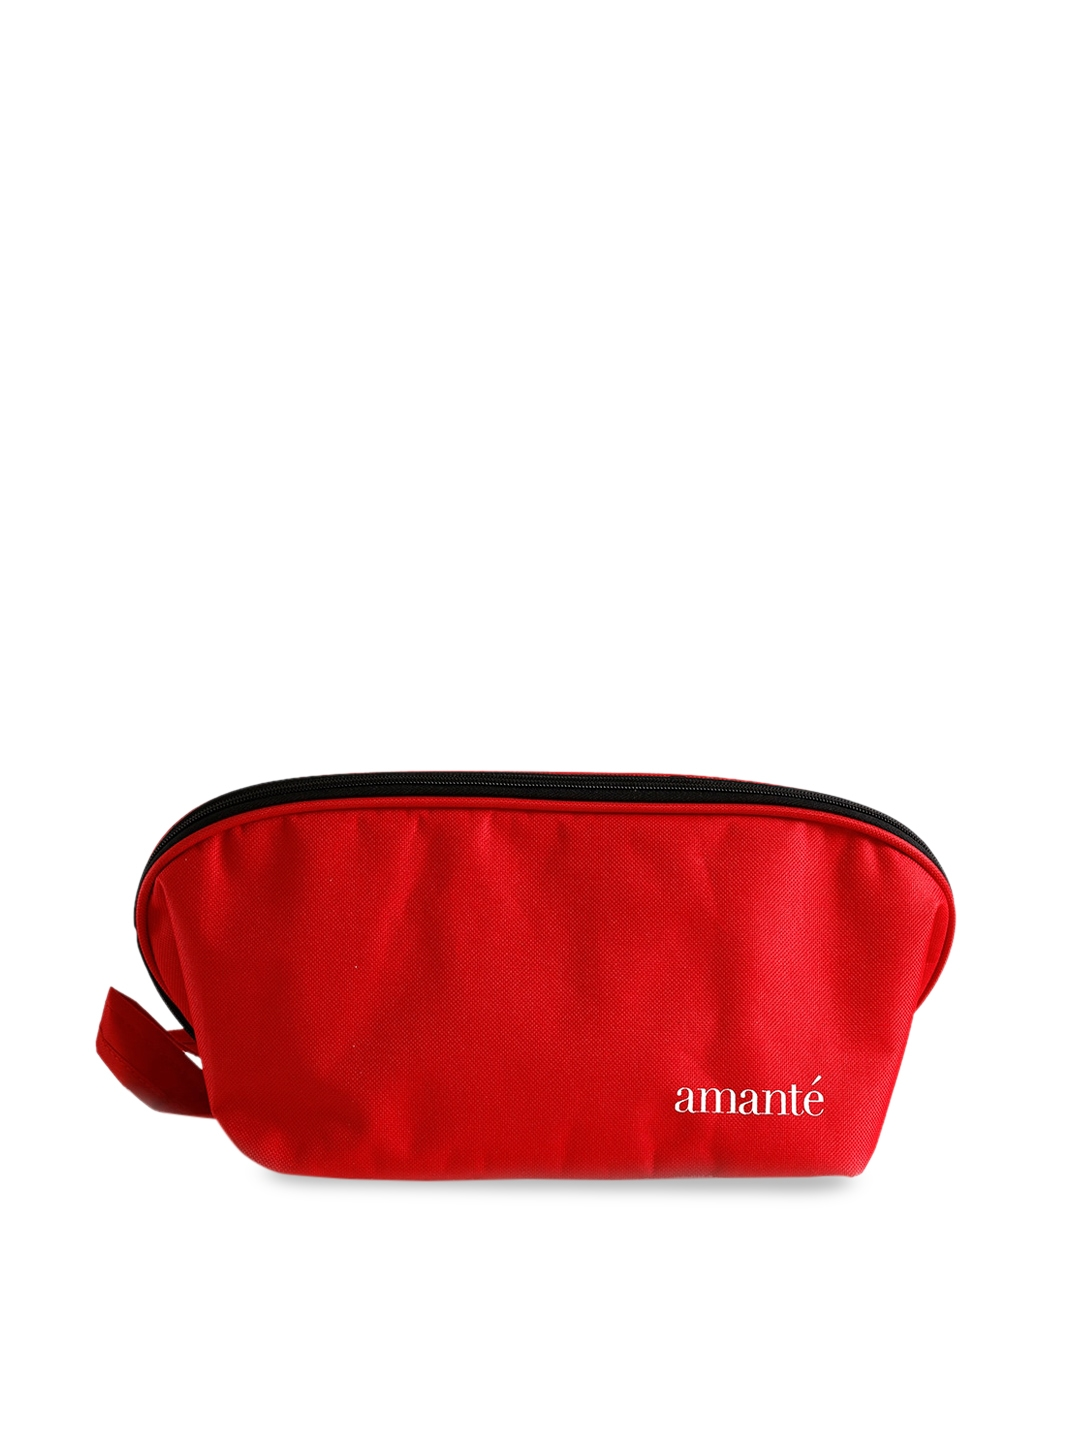 Amante Women Red Solid Lingerie Lingerie Travel Bag